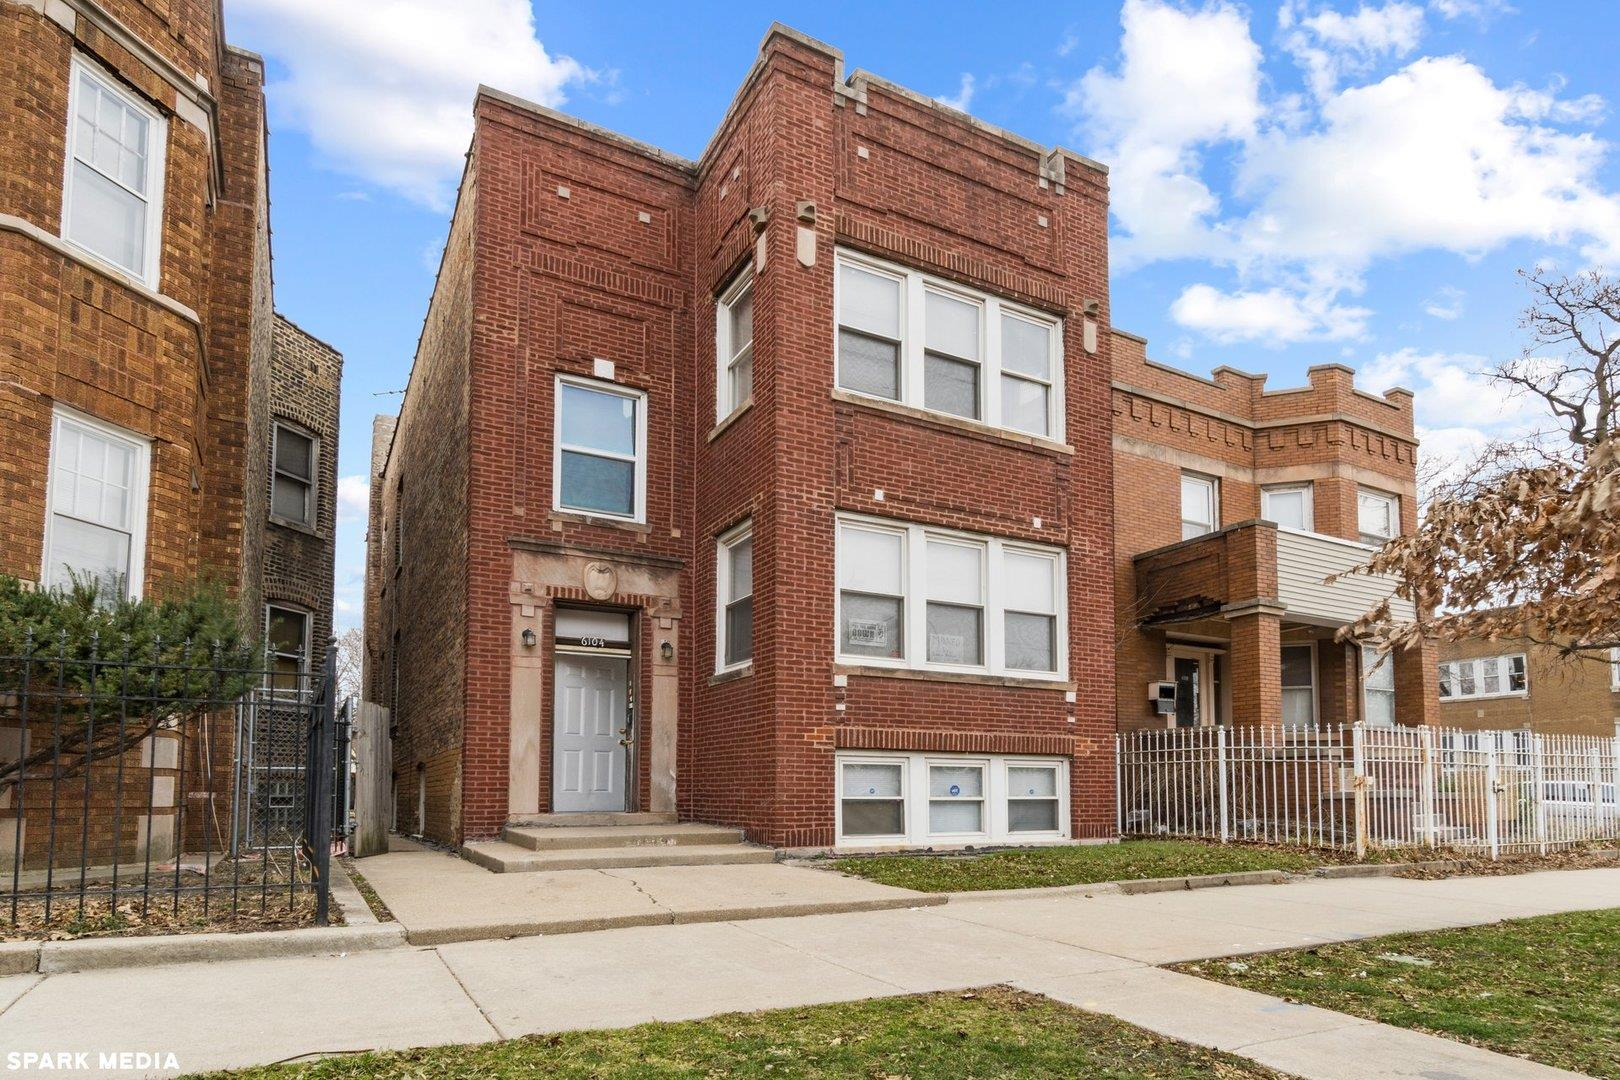 6104 S Rockwell Street, Chicago, IL 60629 - #: 11011170